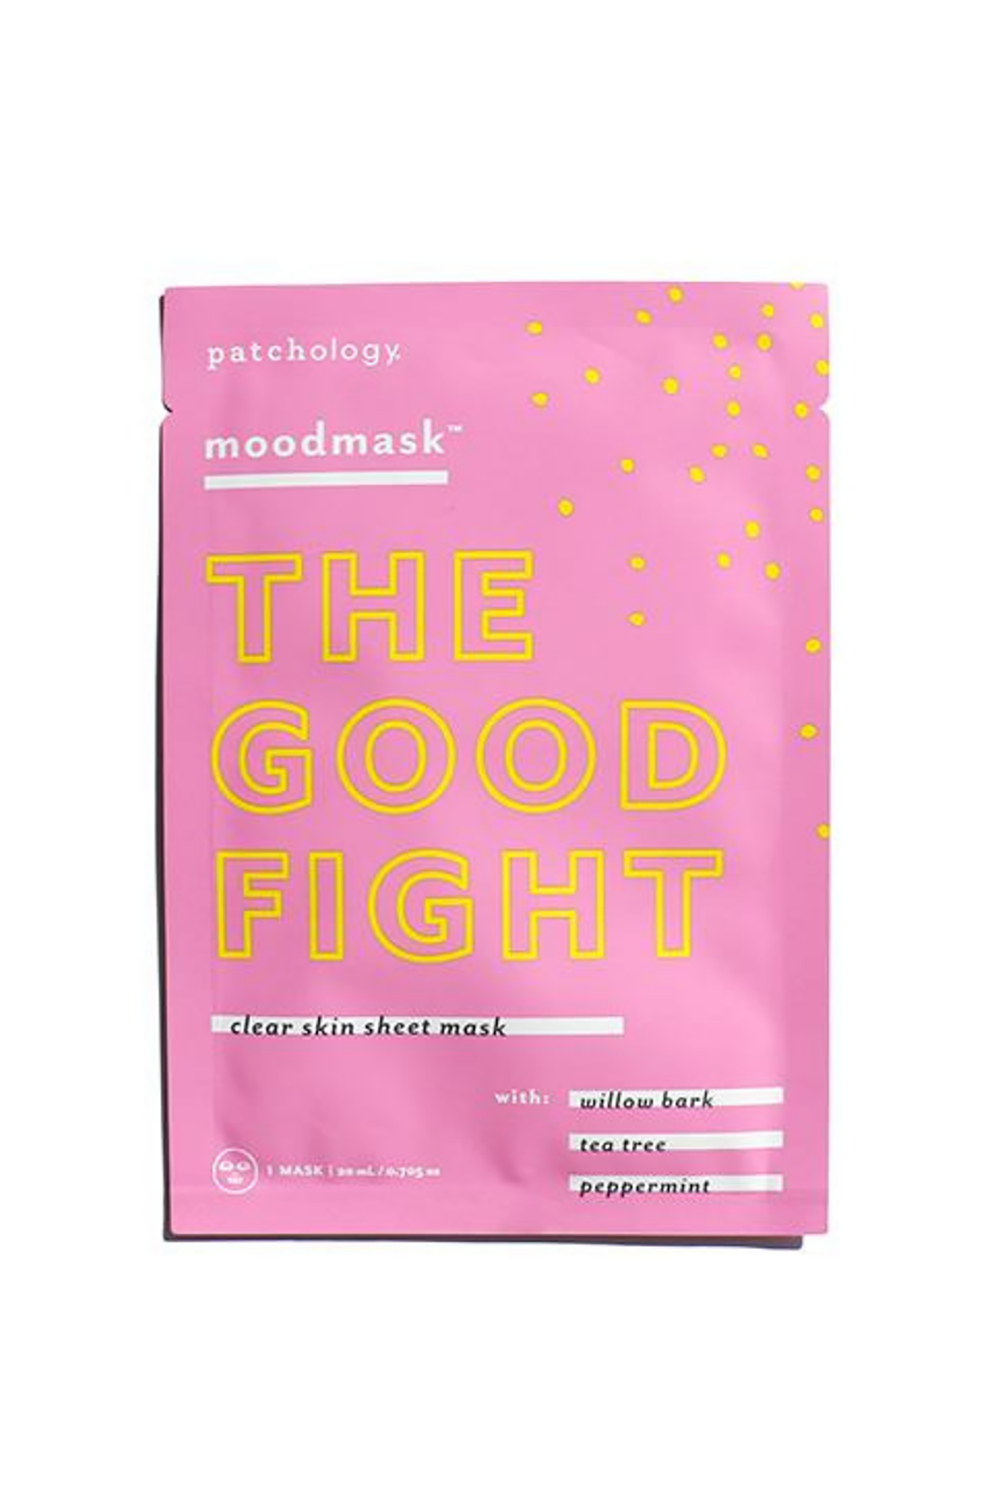 Patchology moodmask ''The Good Fight'' Clear Skin Sheet Mask Patchology moodmask ''The Good Fight'' Clear Skin Sheet Mask, $5 SHOP IT When your skin is angry at you for something and decides to get you back with a breakout, this mask will be your knight in shining armor. It's made with willow bark, tea tree, and peppermint to vacuum-out clogged pores, soothe inflammation, and control your skin's oil production.